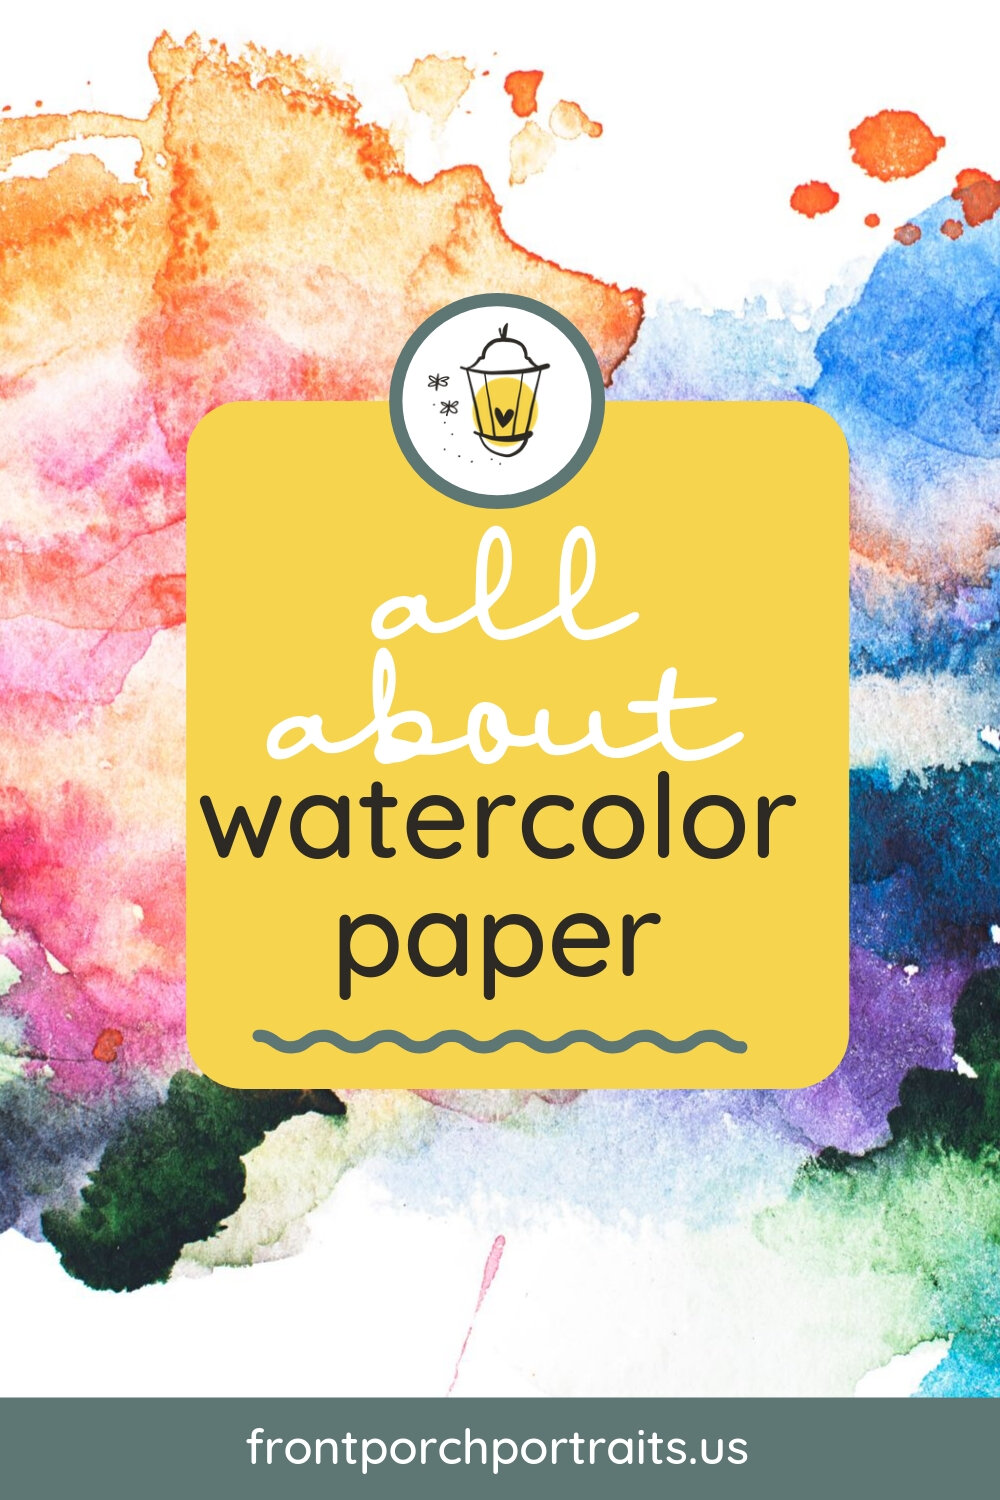 all-about-watercolor-paper